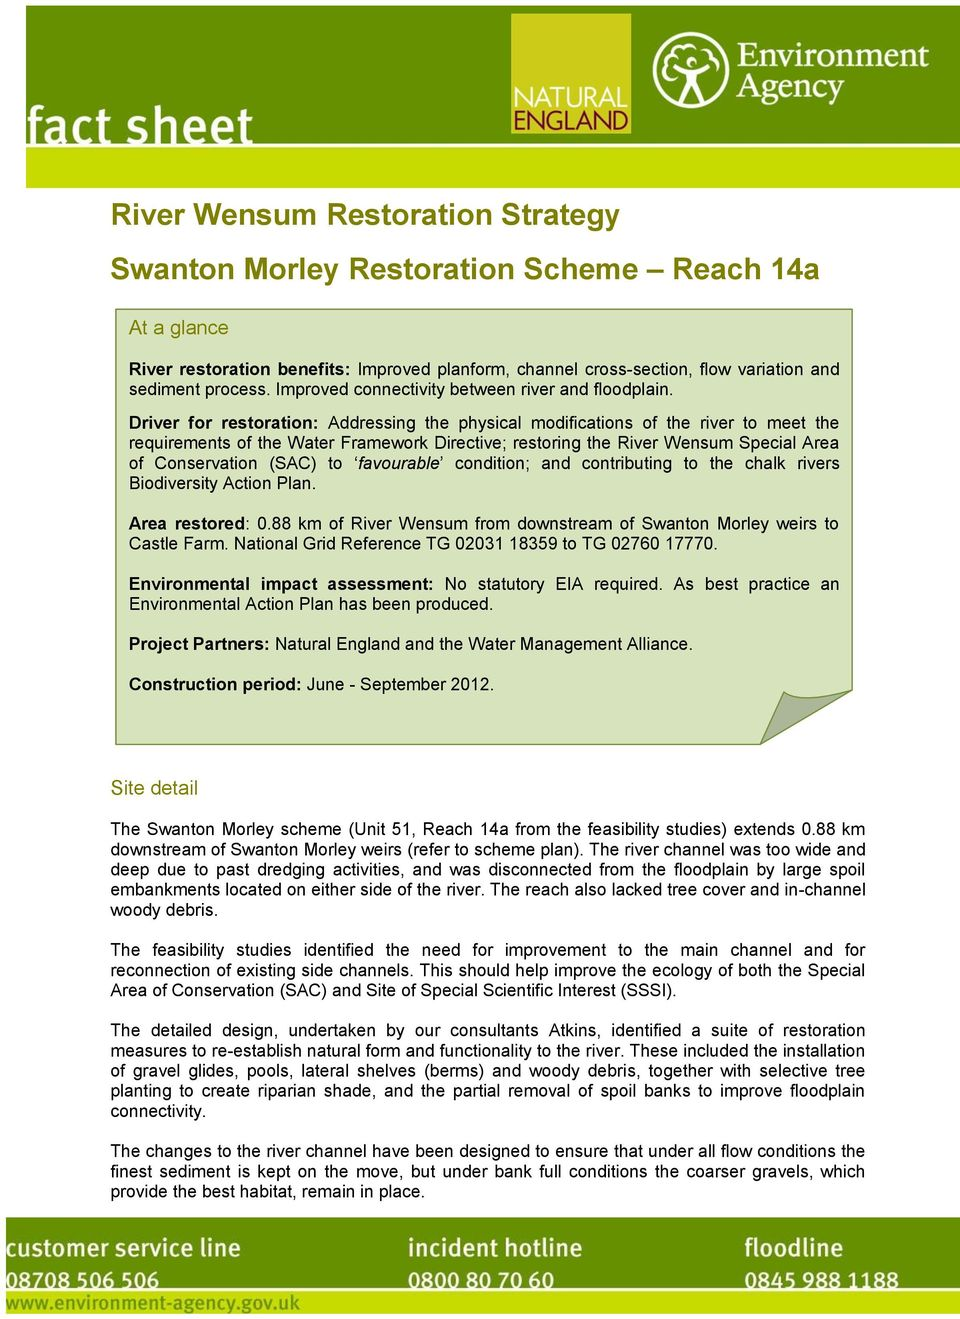 Driver for restoration: Addressing the physical modifications of the river to meet the requirements of the Water Framework Directive; restoring the River Wensum Special Area of Conservation (SAC) to